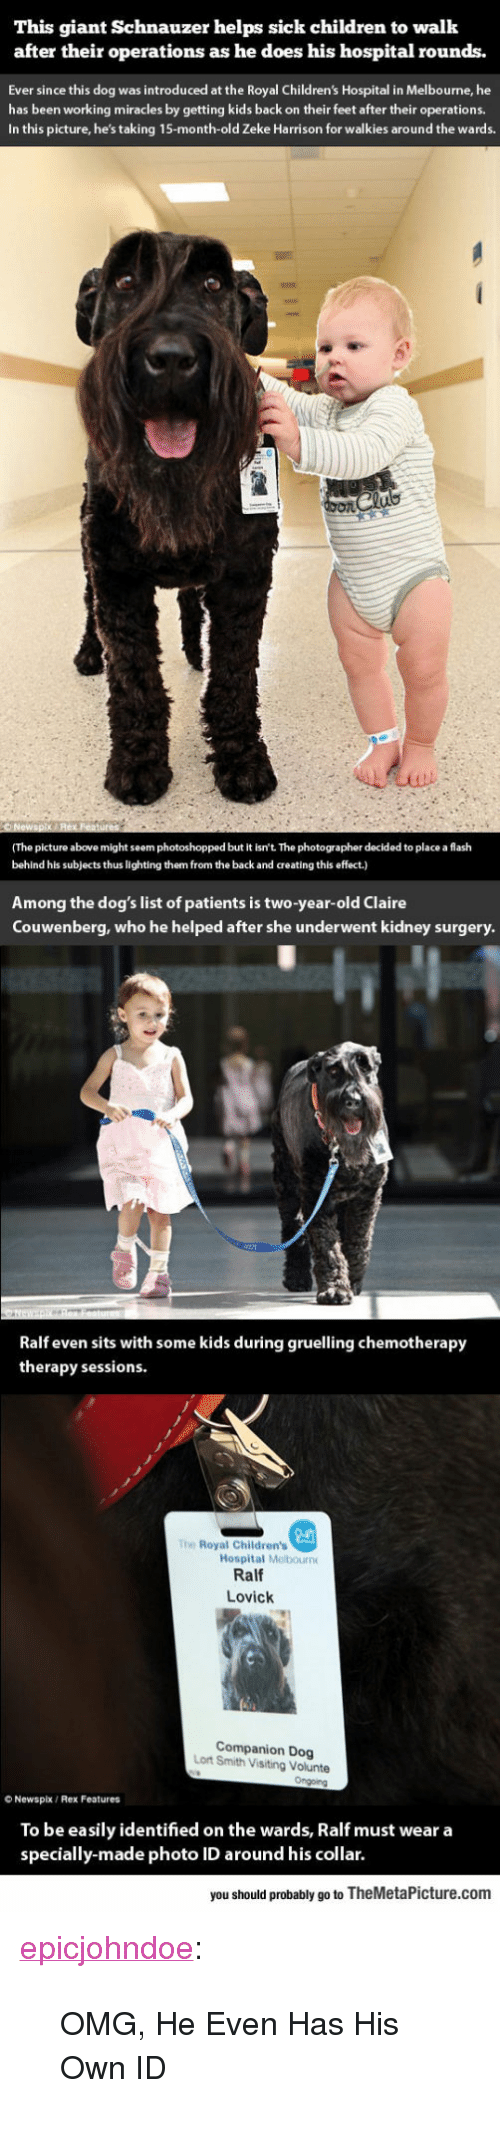 """Children, Dogs, and Omg: This giant Schnauzer helps sick children to walk  after their operations as he does his hospital rounds.  Ever since this dog was introduced at the Royal Children's Hospital in Melbourne, he  has been working miracles by getting kids back on their feet after their operations.  In this picture, he's taking 15-month-old Zeke Harrison for walkies around the wards.  (The picture above might seem photoshopped but it isn't. The photographer decided to place a flash  behind his subjects thus lighting them from the back and creating this effect.)  Among the dog's list of patients is two-year-old Claire  Couwenberg, who he helped after she underwent kidney surgery  Ralf even sits with some kids during gruelling chemotherapy  therapy sessions  The Royal Children's  Hospital Melbourn  Ralf  Lovick  Companion Dog  Lort Smith Visiting Volunte  O Newspix/ Rex Features  To be easily identified on the wards, Ralf must wear a  specially-made photo ID around his collar.  you should probably go to TheMetaPicture.com <p><a href=""""https://epicjohndoe.tumblr.com/post/170360145056/omg-he-even-has-his-own-id"""" class=""""tumblr_blog"""">epicjohndoe</a>:</p>  <blockquote><p>OMG, He Even Has His Own ID</p></blockquote>"""